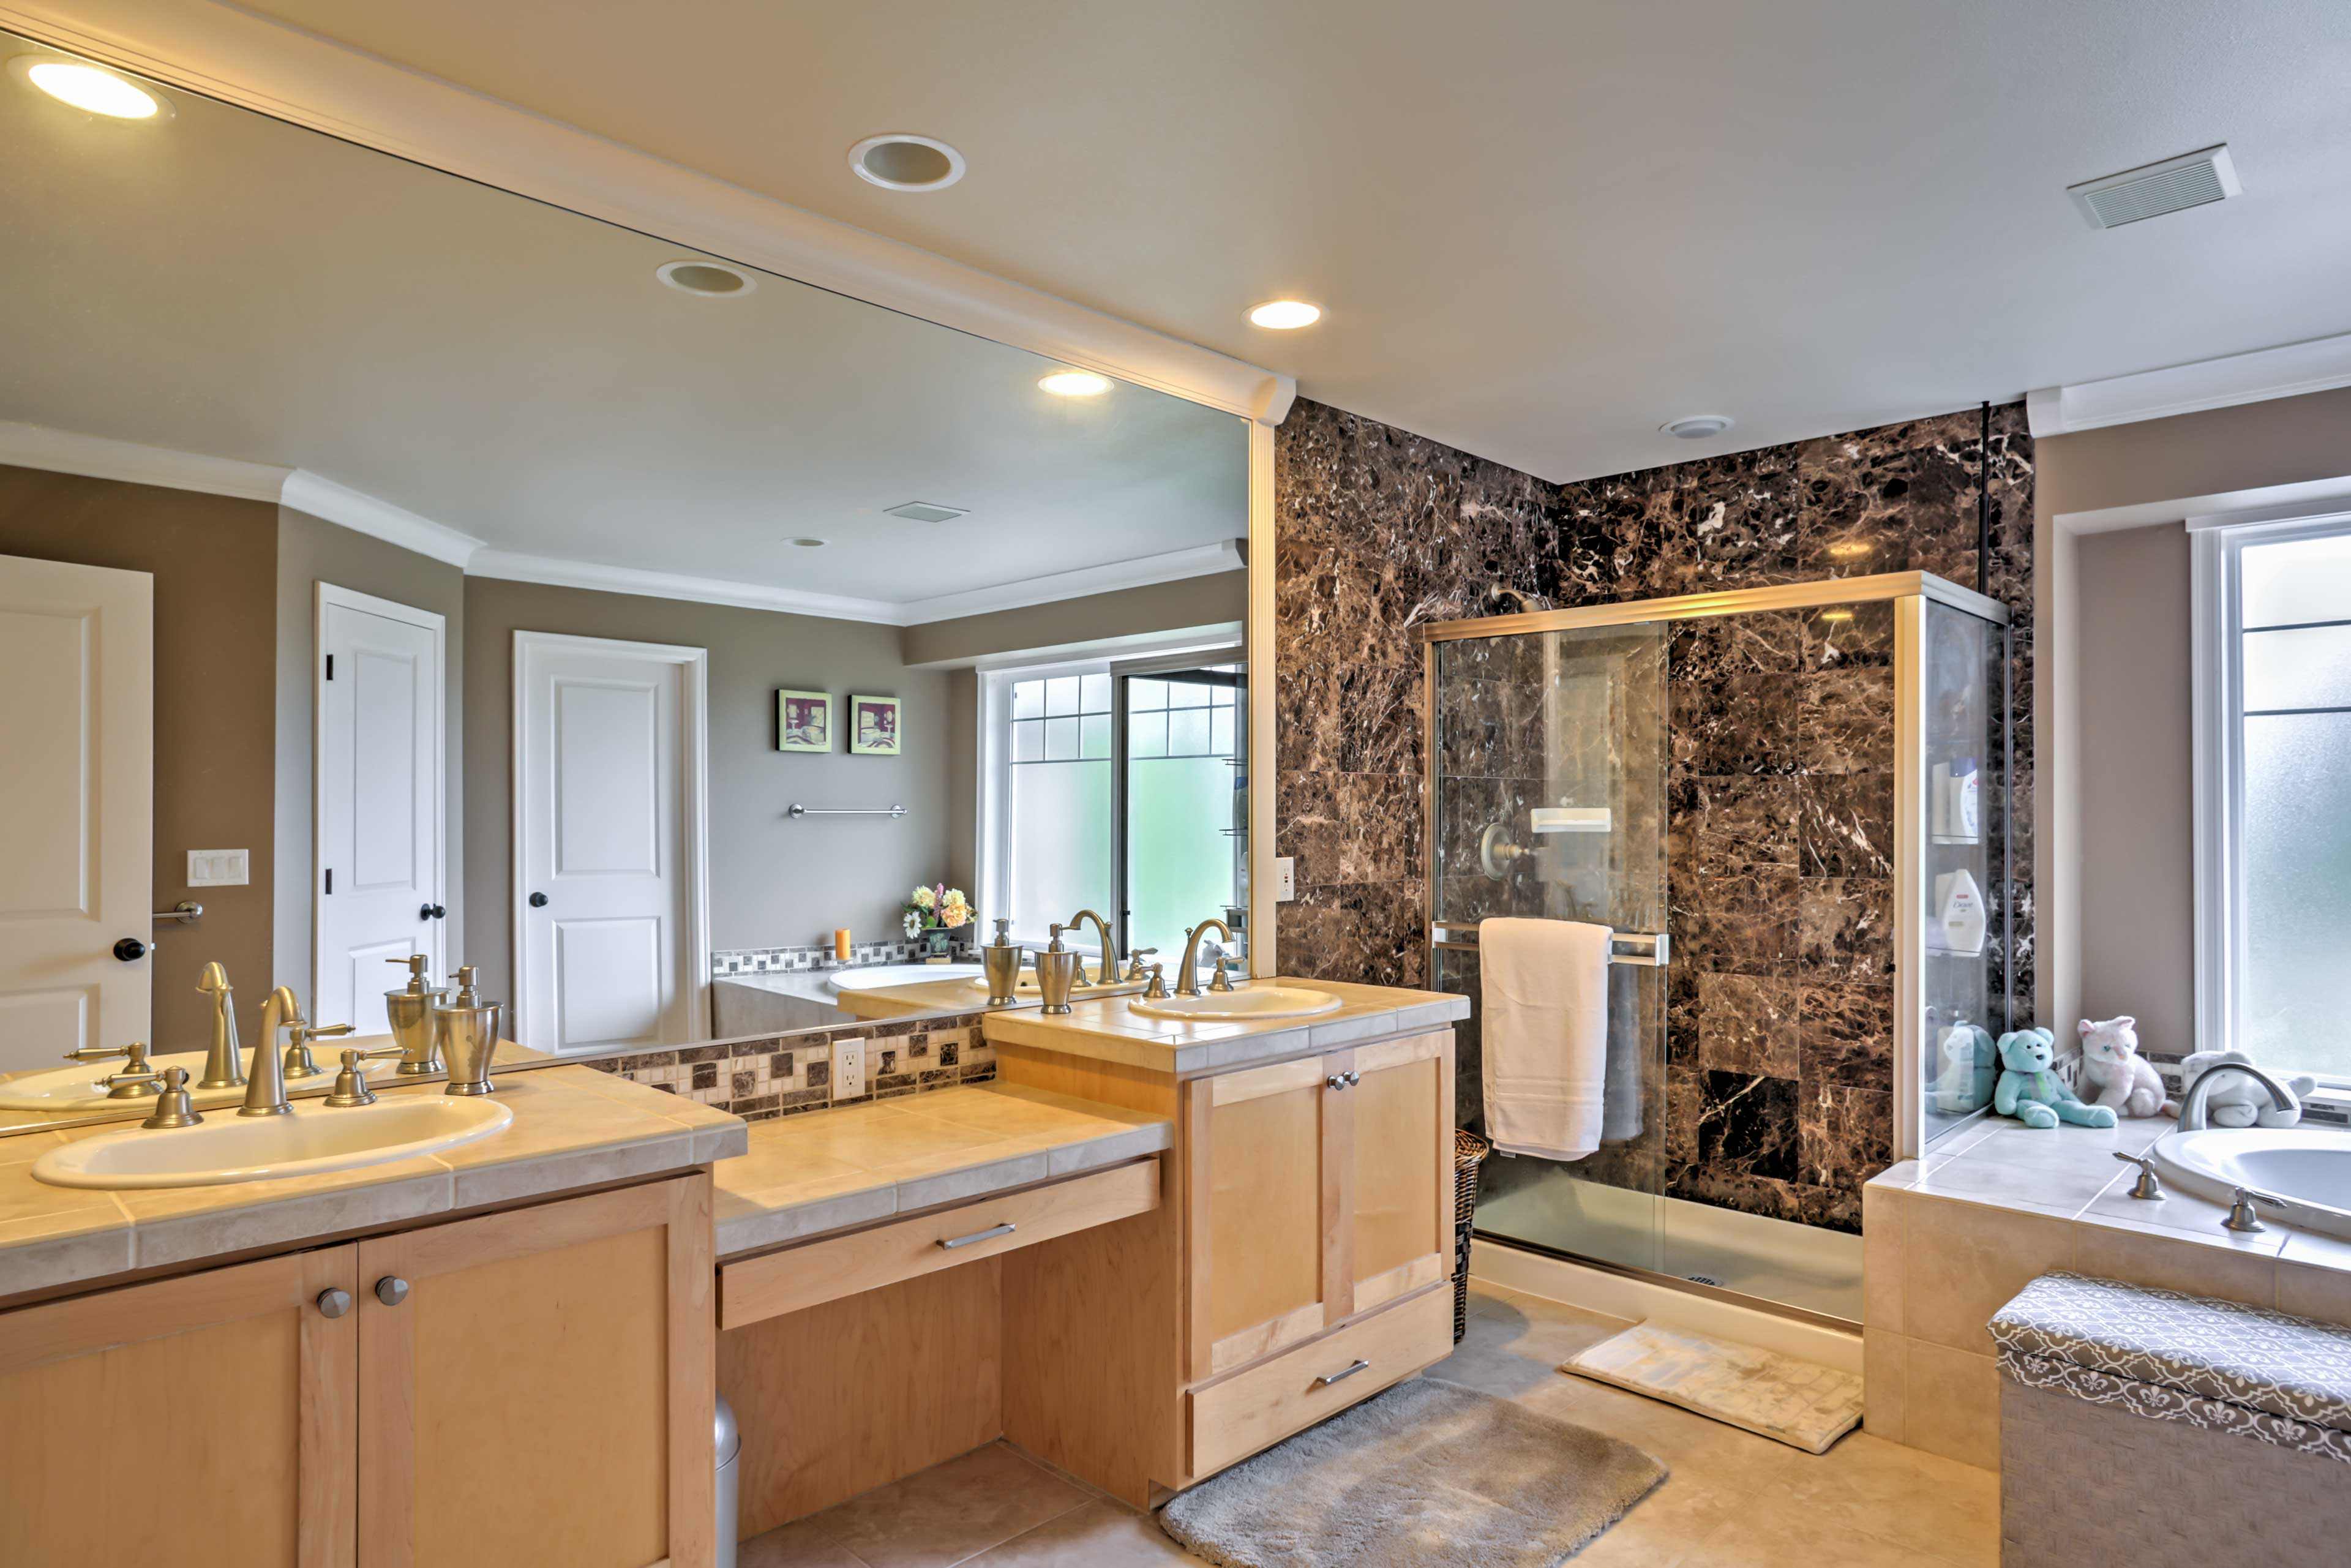 The master en-suite features a double vanity, soaking tub, and walk-in shower.